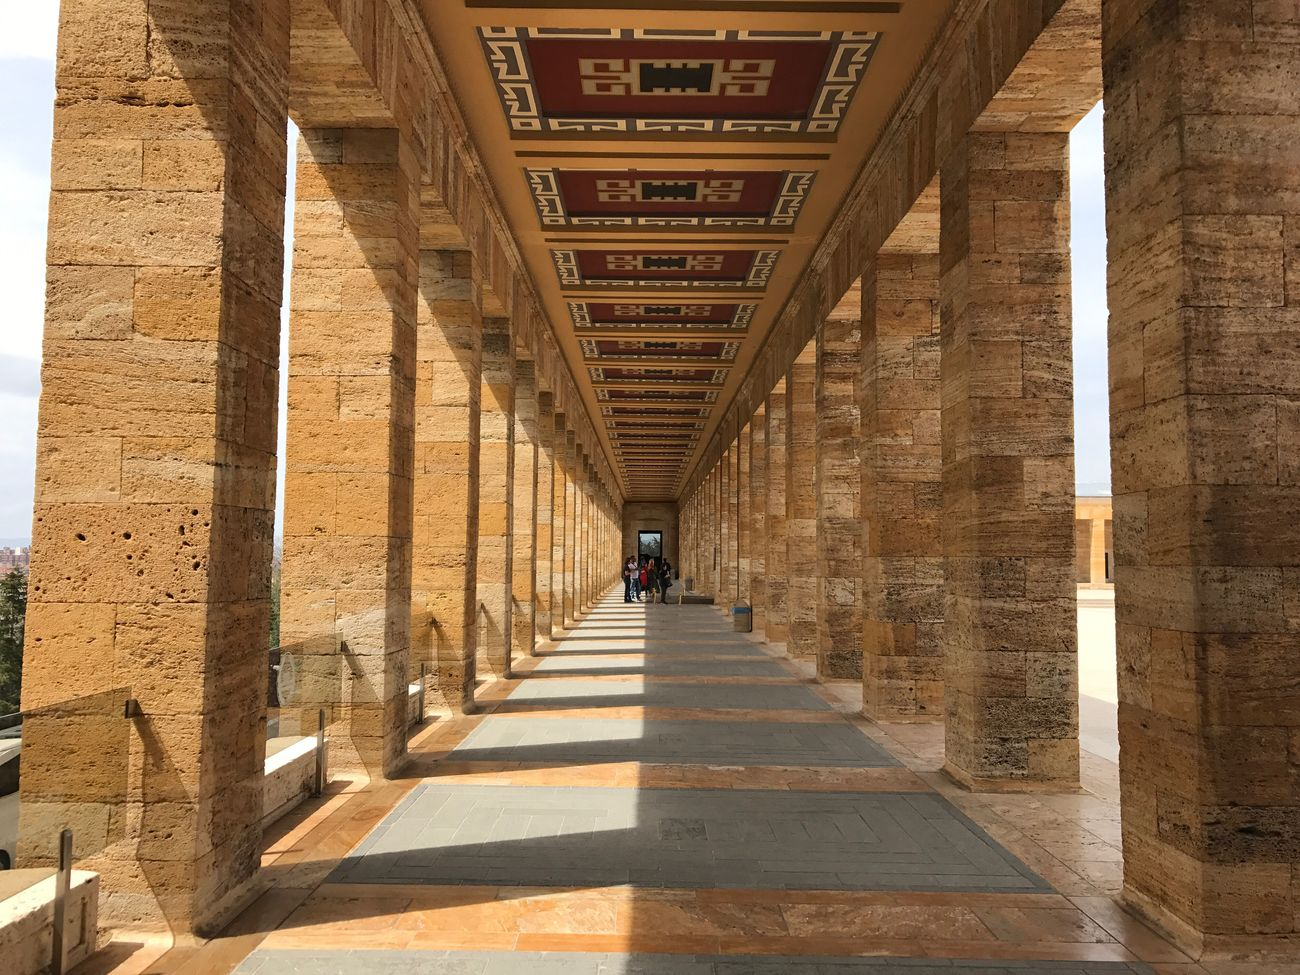 Nature Architecture Built Structure Tourism History The Way Forward Travel Men Travel Destinations Architectural Column Shadow Day One Person Indoors  One Man Only City Adult People Only Men Anıtkabir